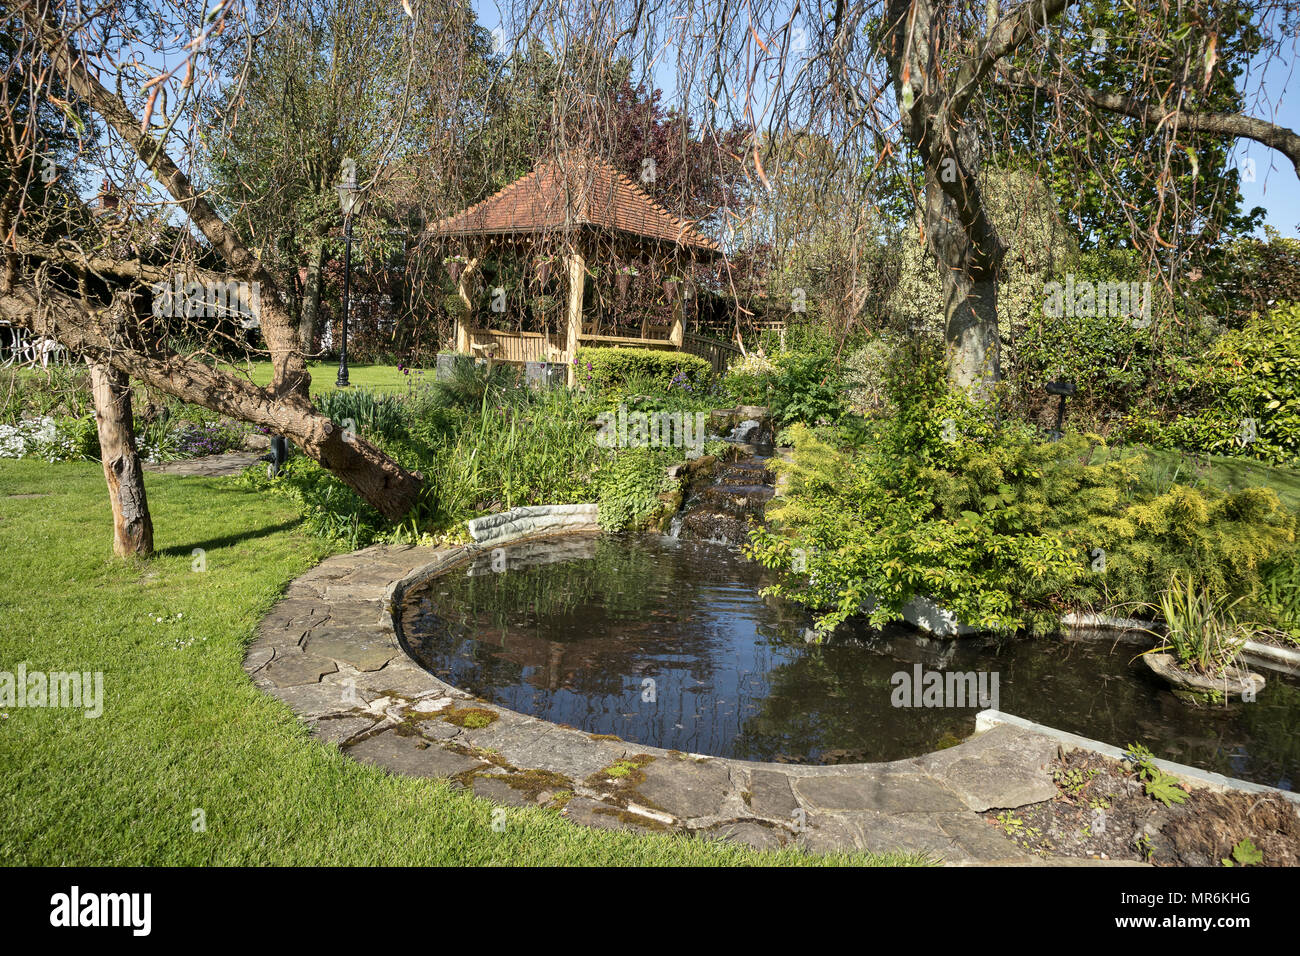 The duck pond and Millstream at The Millstream Hotel at Bosham, Near Chichester, Sussex, UK - Stock Image